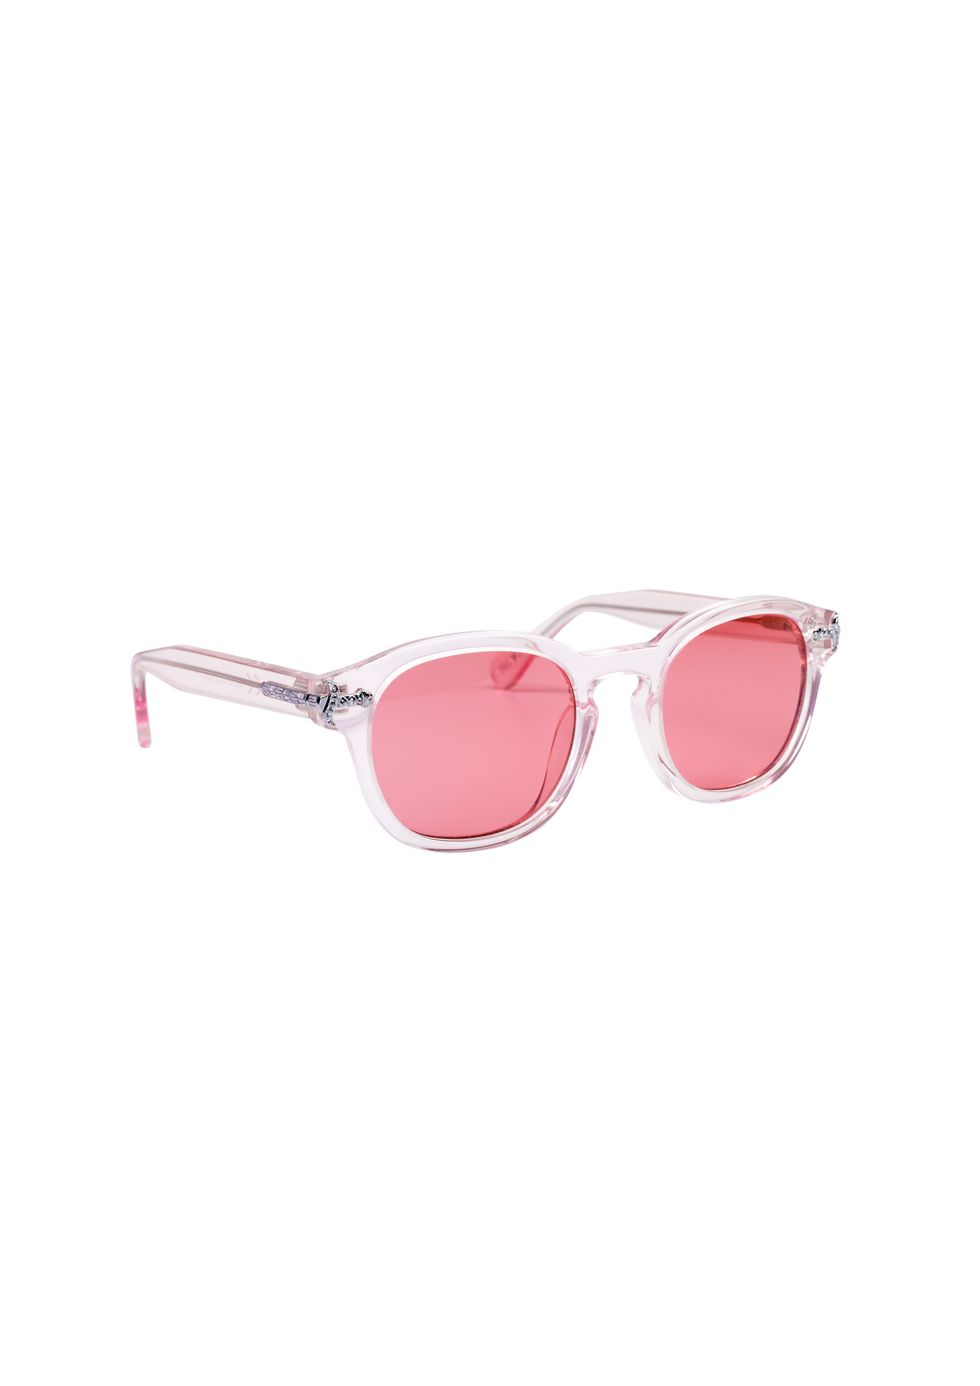 GV Acetate Sunglasses